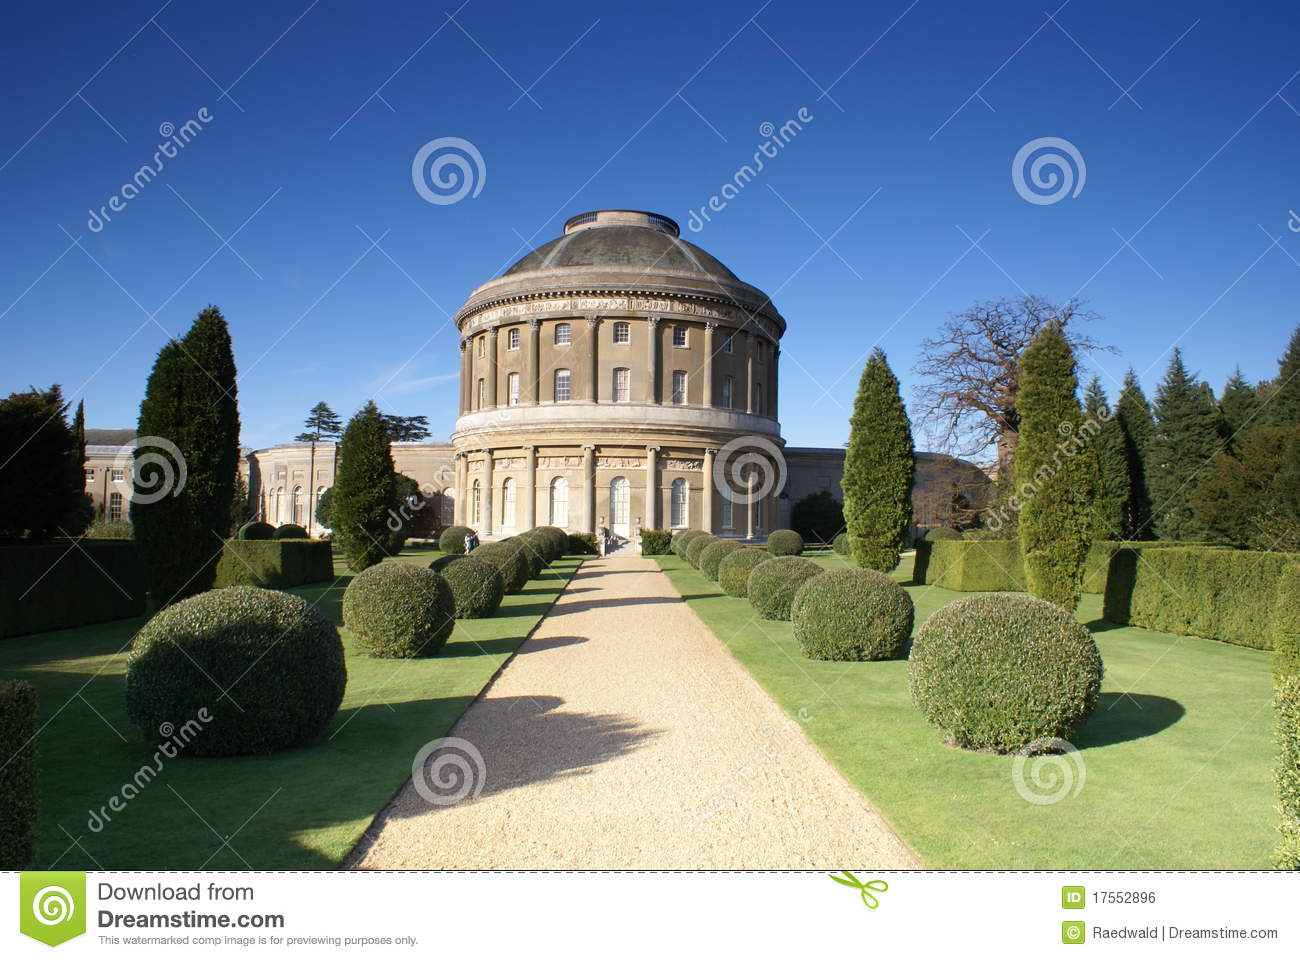 Formal garden of the old English stately home